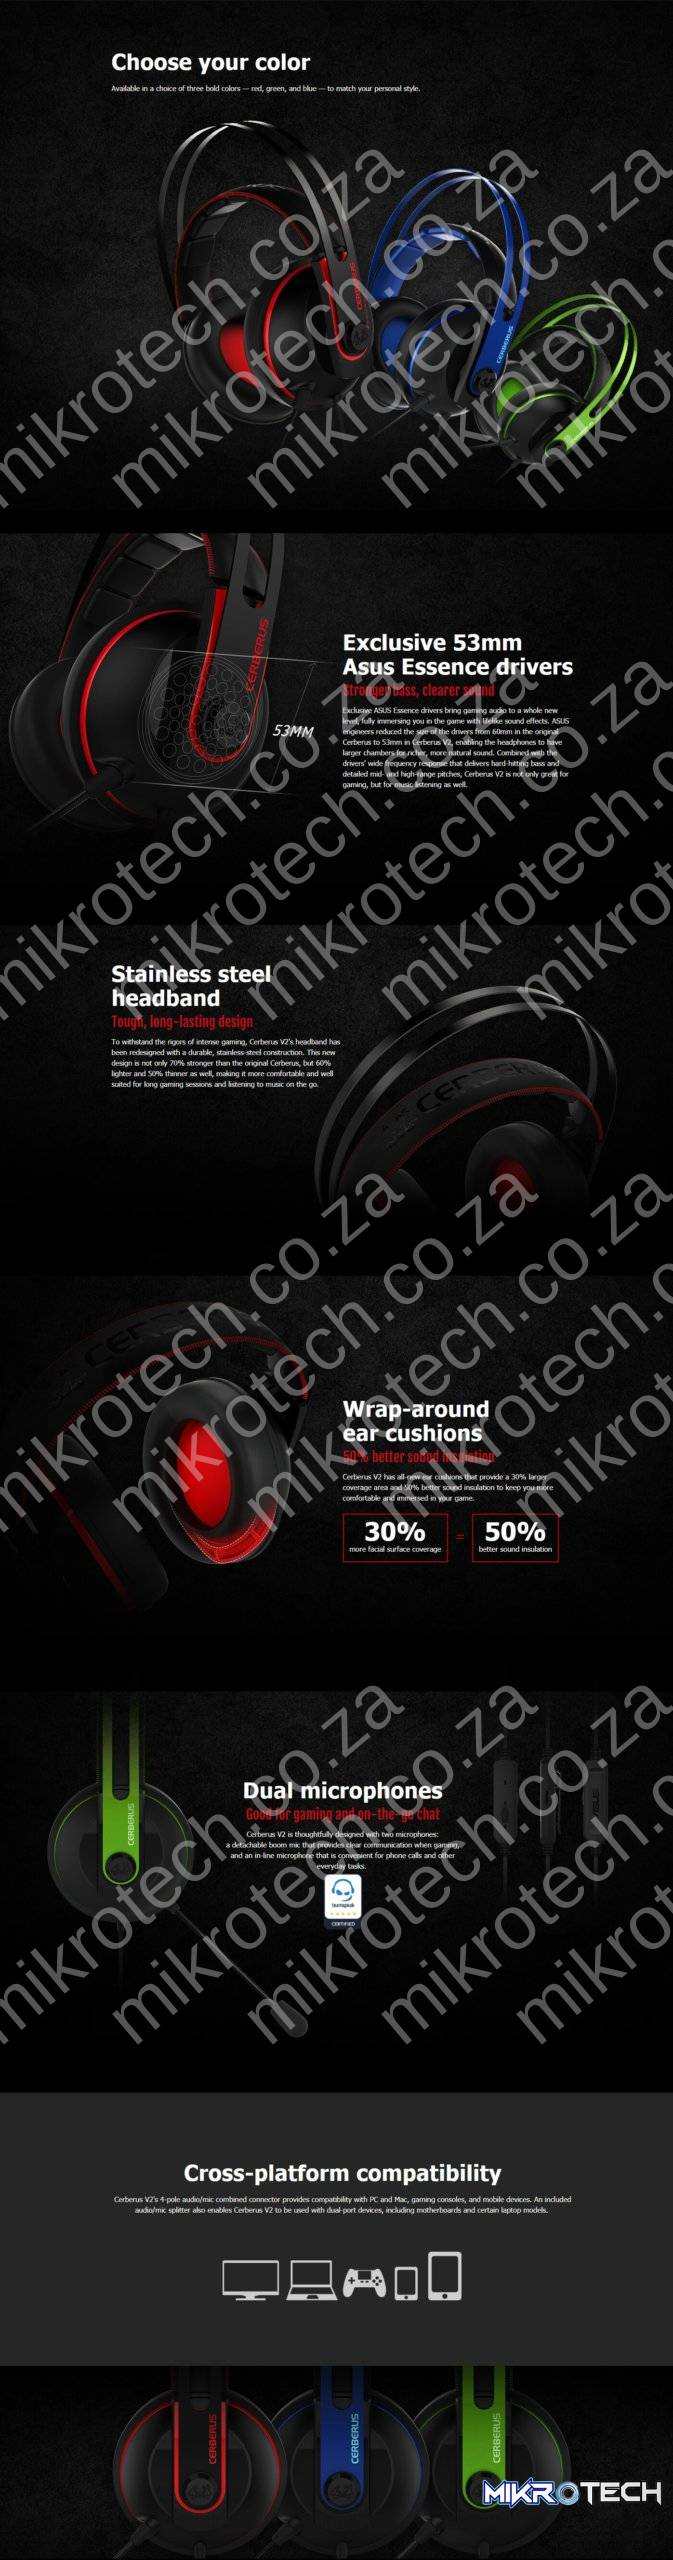 Asus Cerberus V2 Multi-Platform Black/Red Wired Stereo Gaming Headset